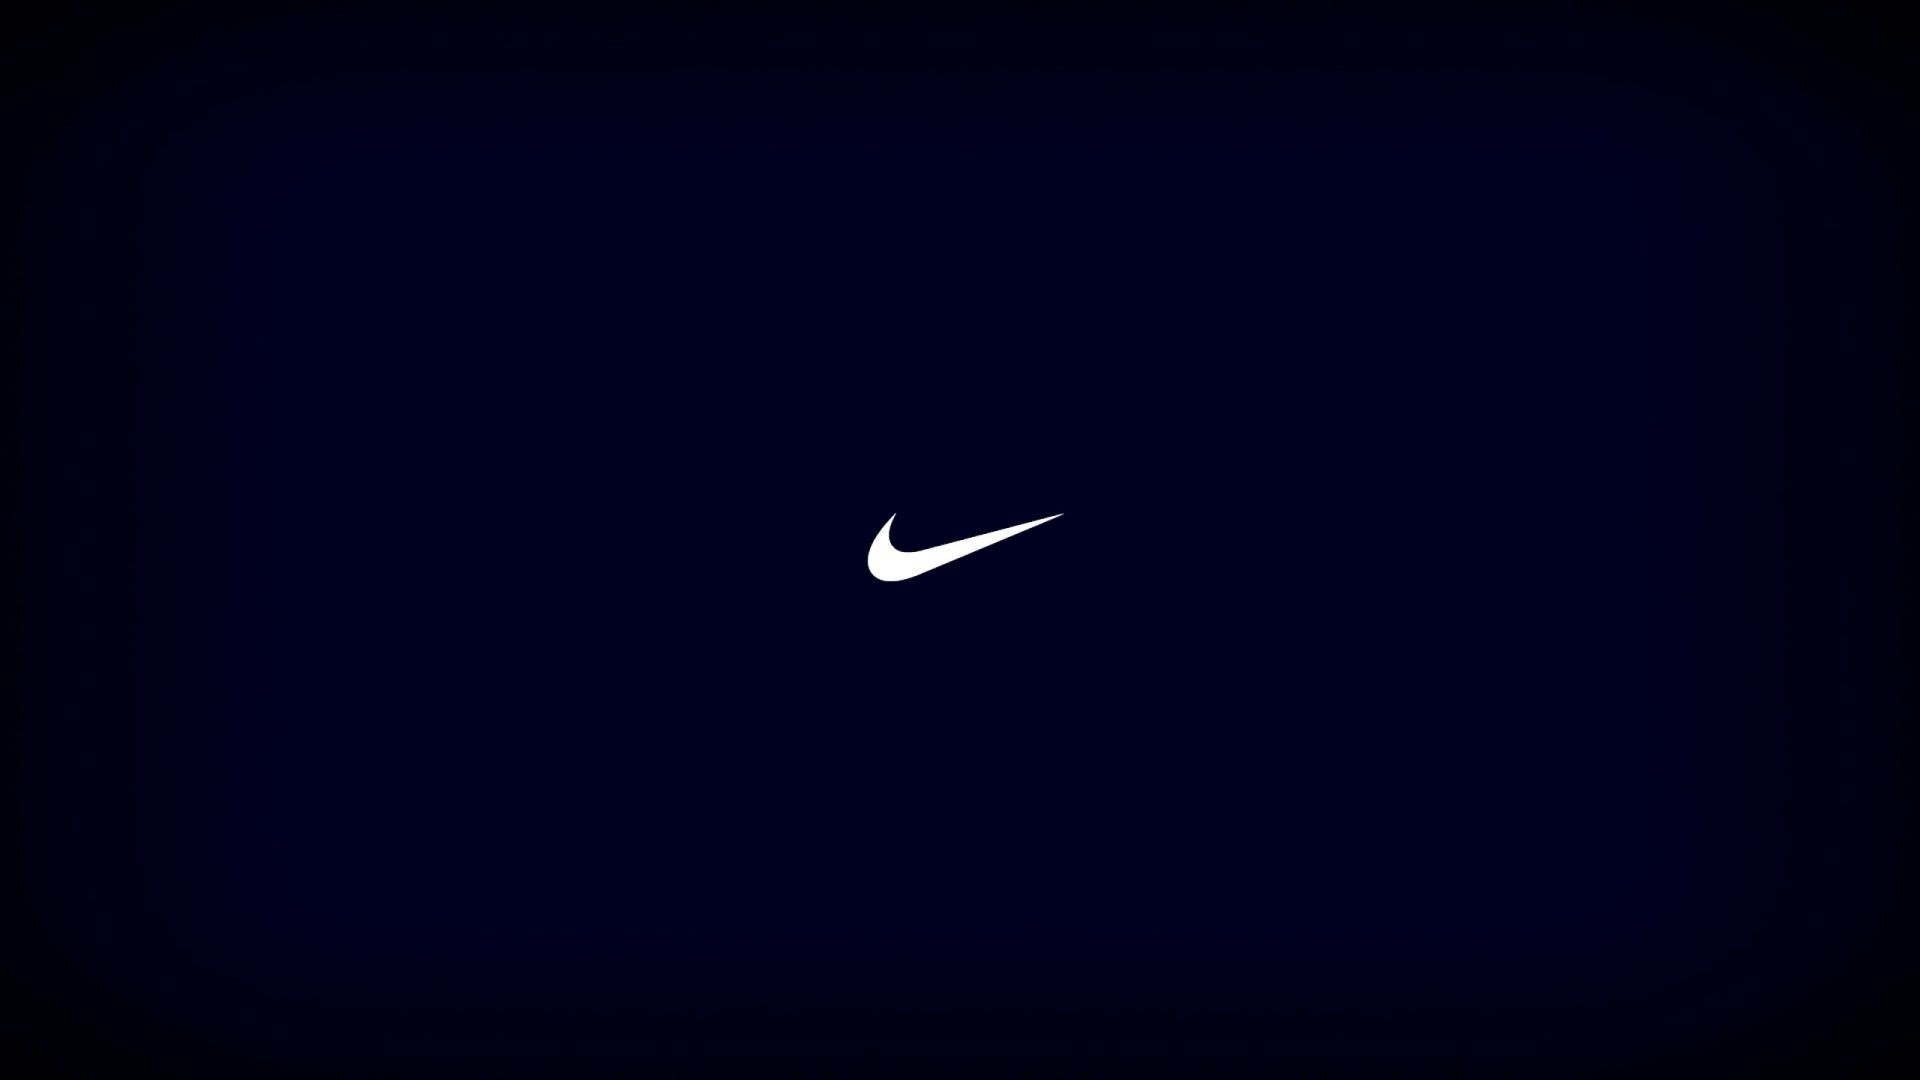 Res: 1920x1080, Title : red nike wallpapers wallpaper | hd wallpapers | pinterest | nike.  Dimension : 1920 x 1080. File Type : JPG/JPEG